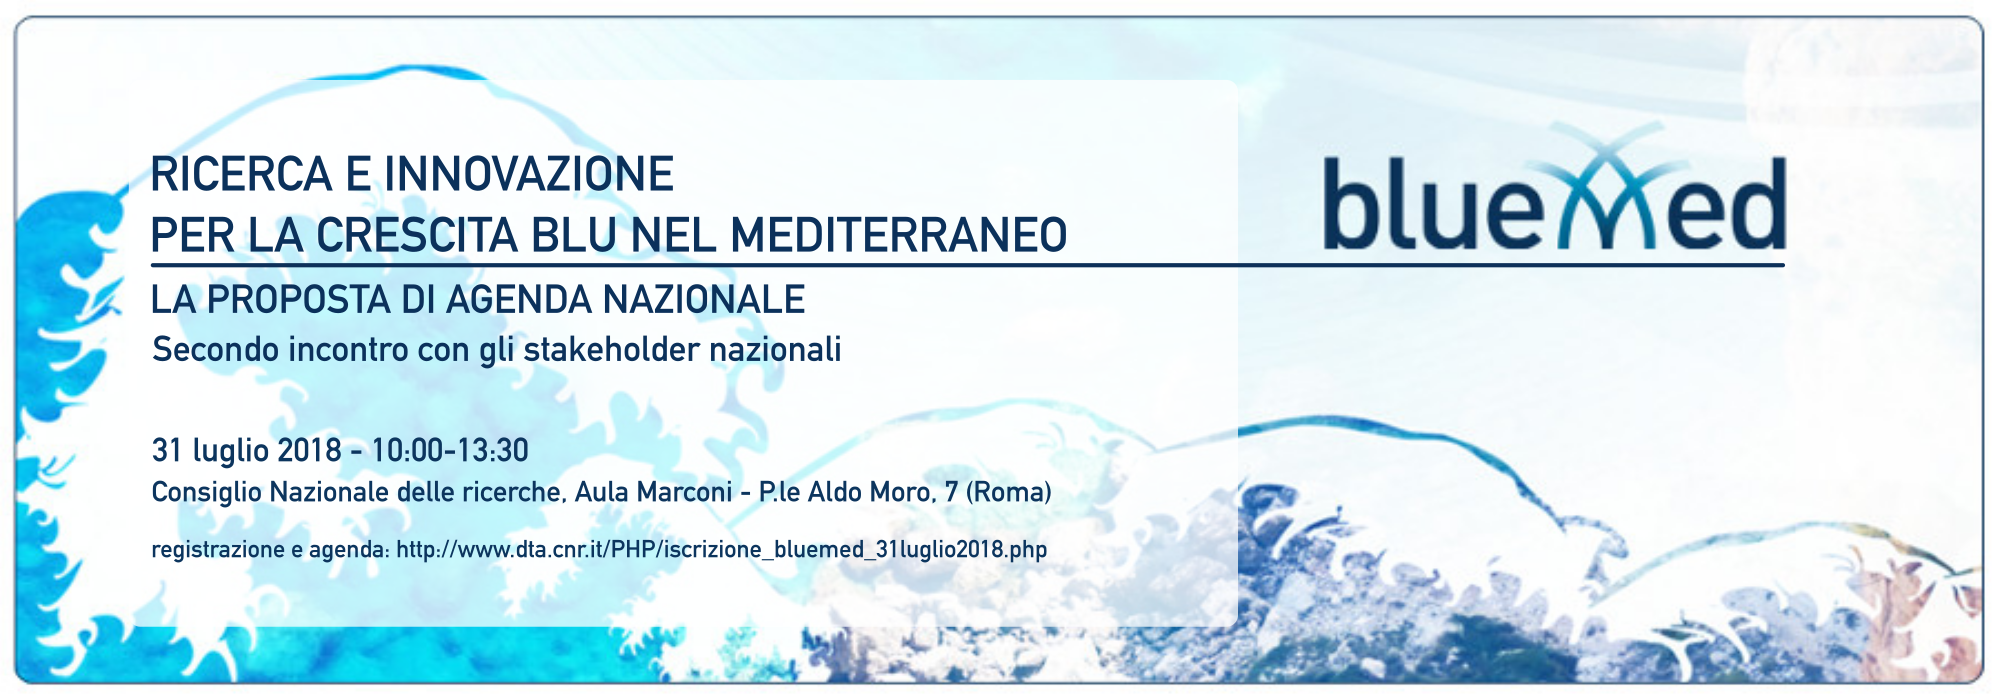 Info about the BlueMed Italian Day in Rome - July 31st 2018